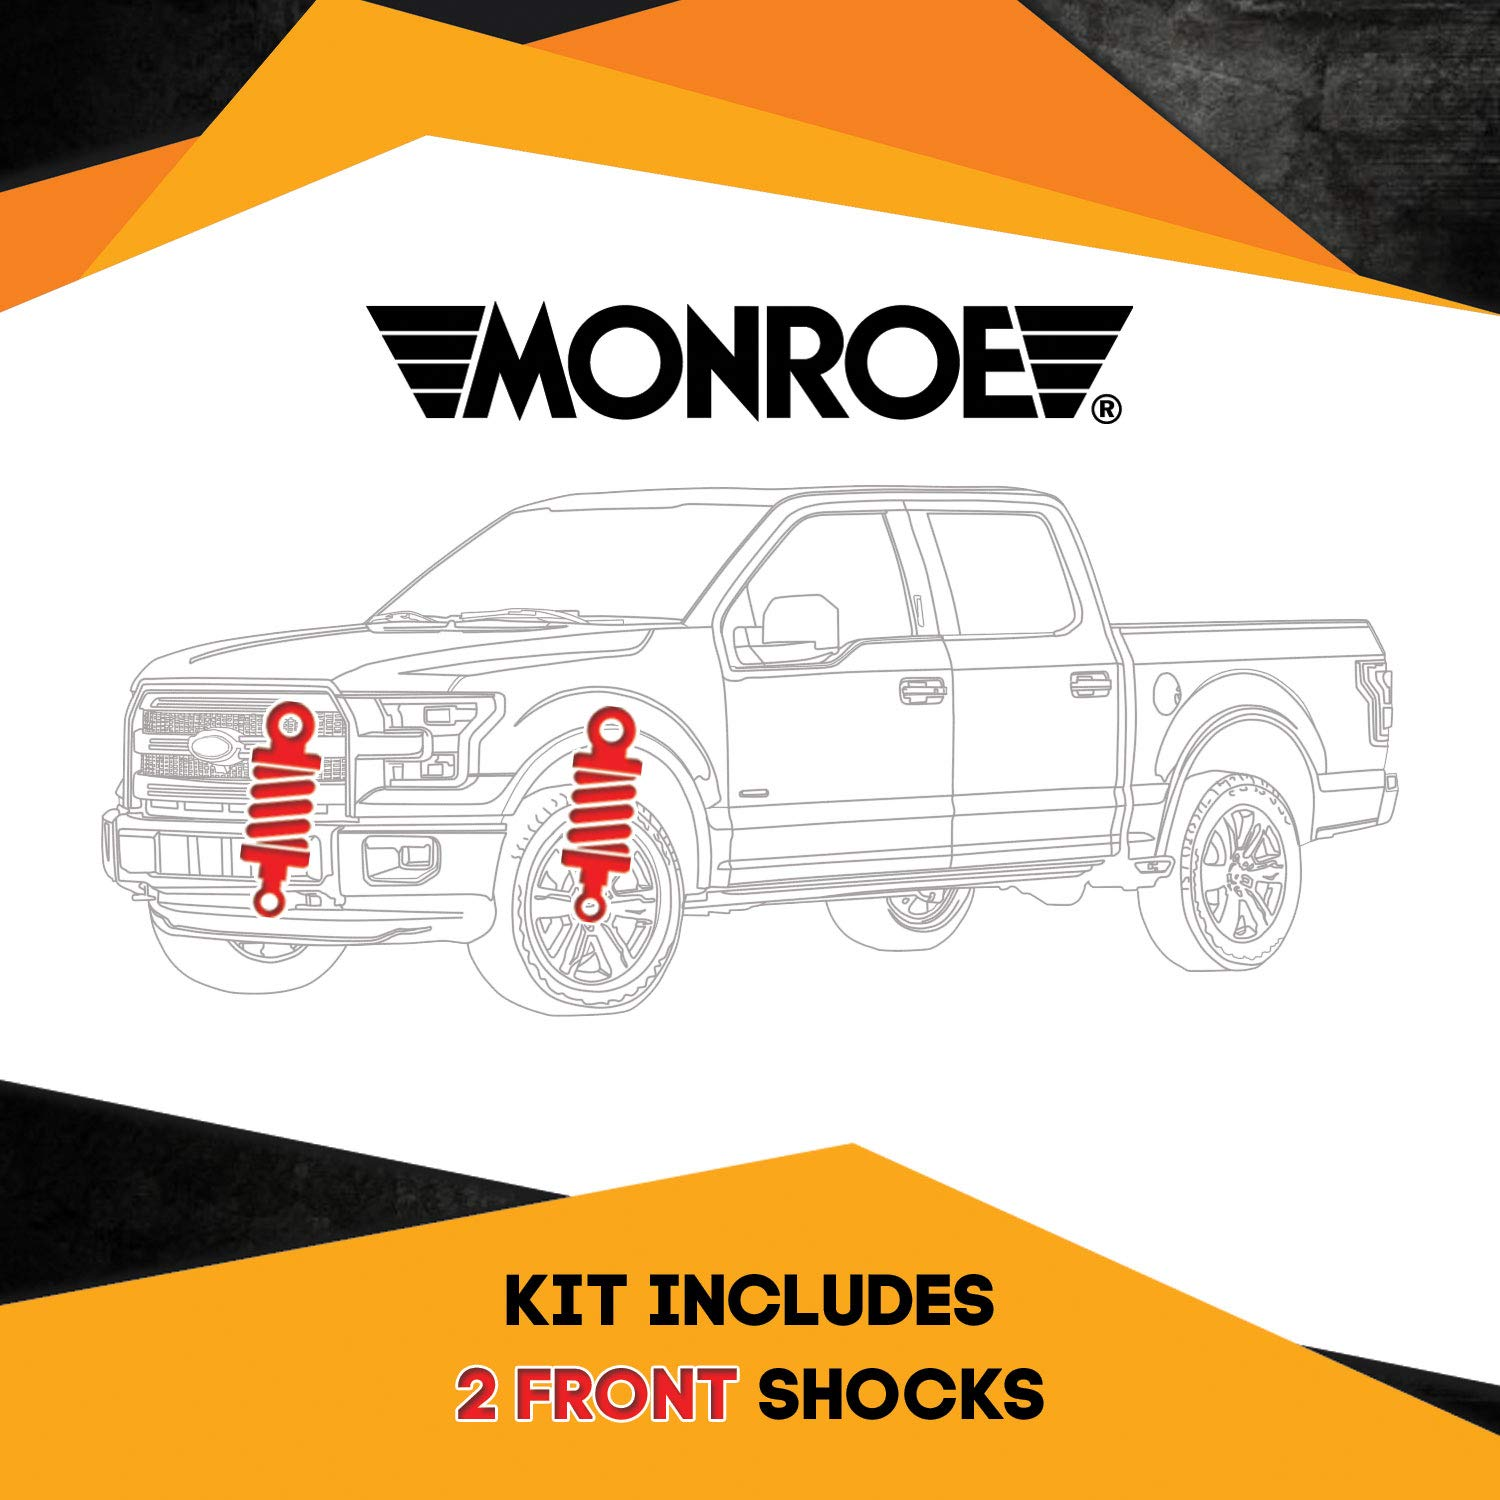 Touring /& Offroad Leveling Monroe Quick Mount Kit of 2 Shocks fits Ford E-350 Super Duty 1999-2003 Matic Plus Front for Replacement Performance